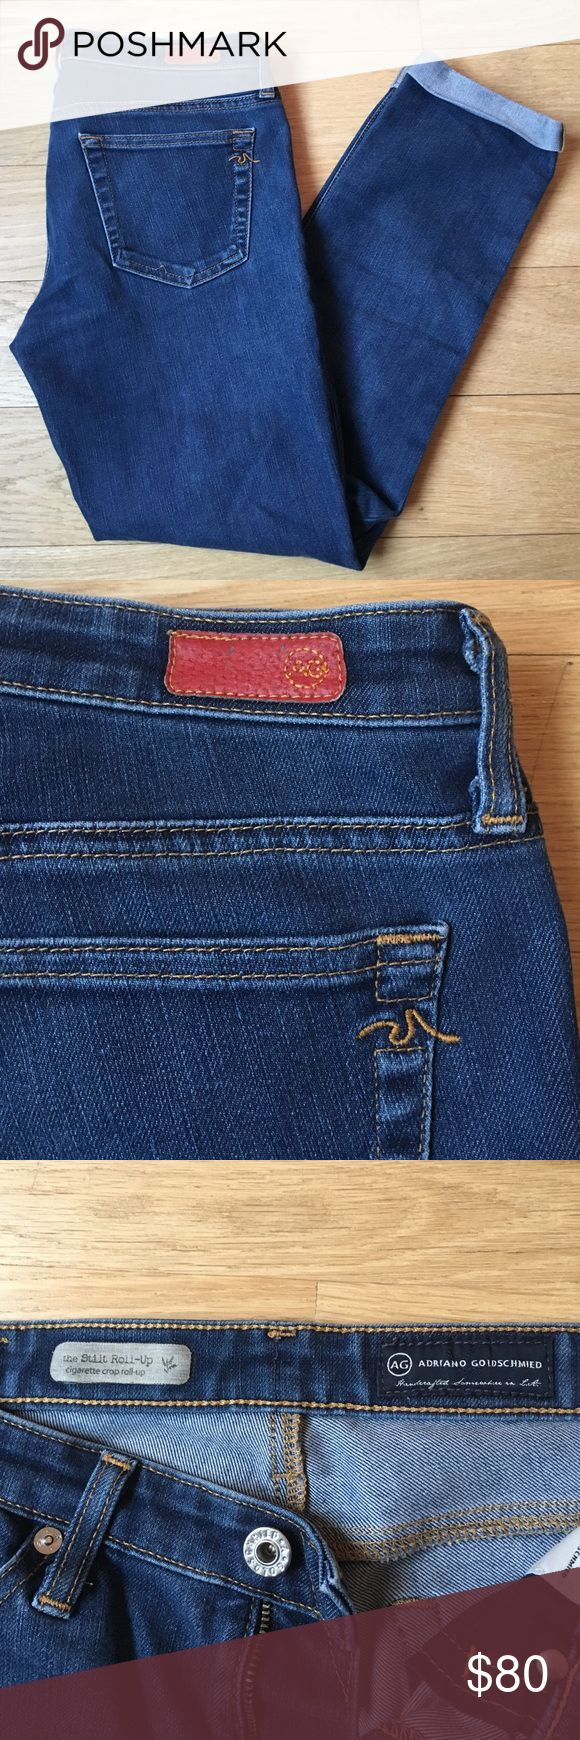 1000 Ideas About Rolled Up Jeans On Pinterest Rachel